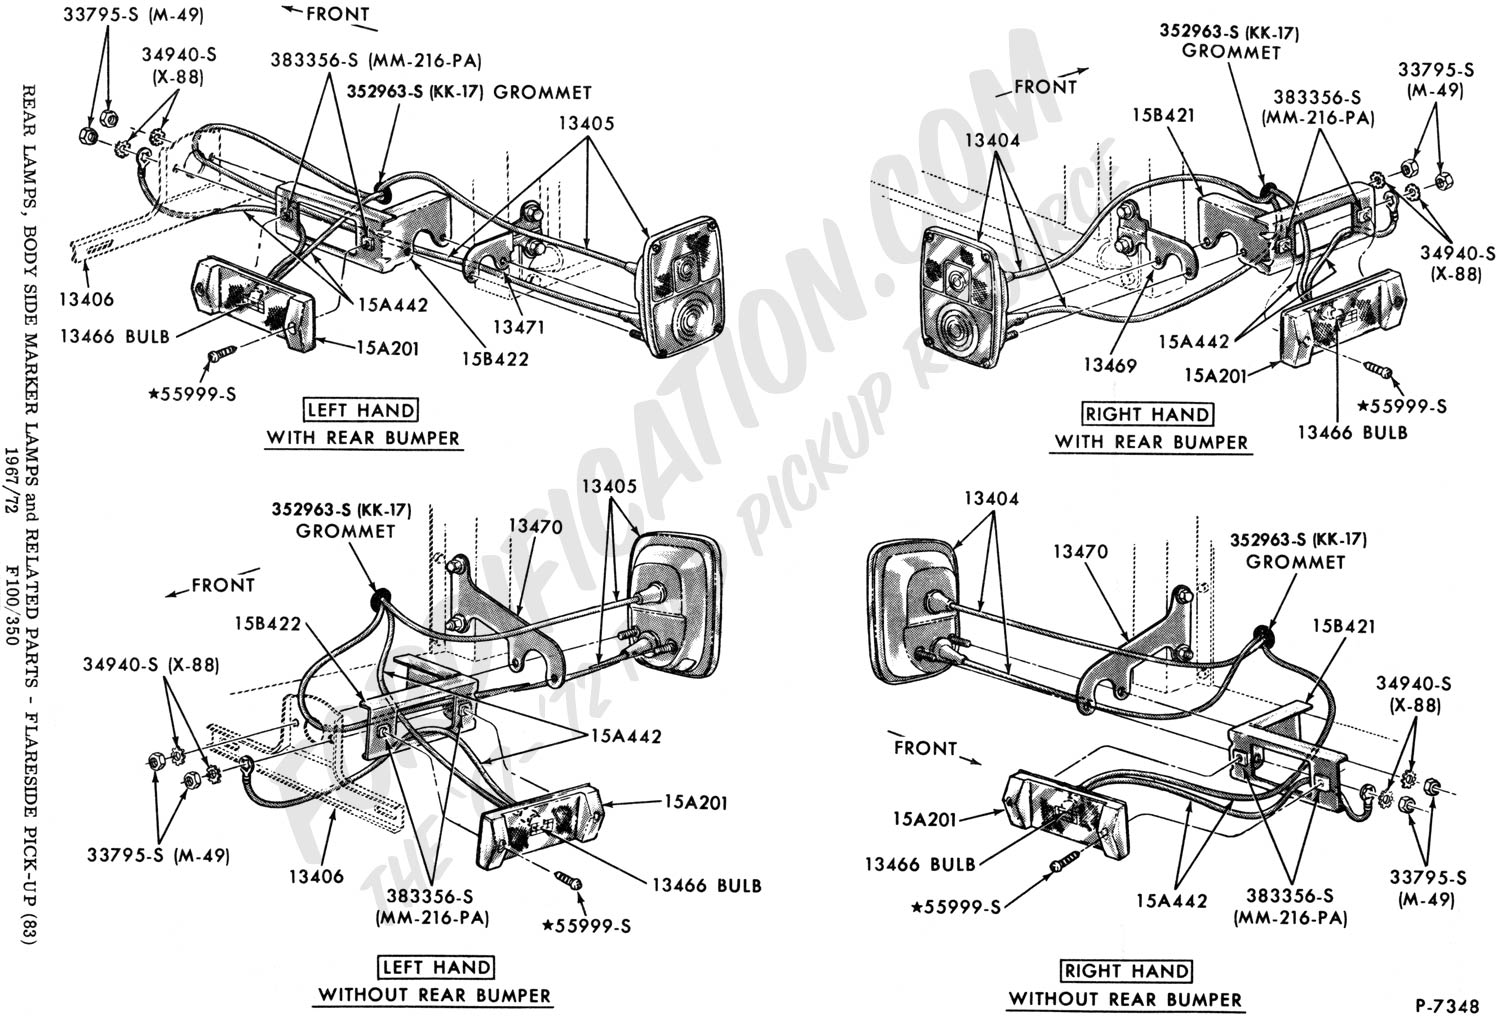 T21961746 Need diagram fuse box located near together with 5v1pm Ford Ranger 4x2 1996 Ford Ranger Cyl Diagnostic Code P1443 furthermore Fender Jaguar Bass Wiring Diagram besides Motorcycle Wire Schematics additionally 4l31e Ford F53 1994 F53 Chassis Vin Code G 7 5 L E4od. on ford mustang fender diagram